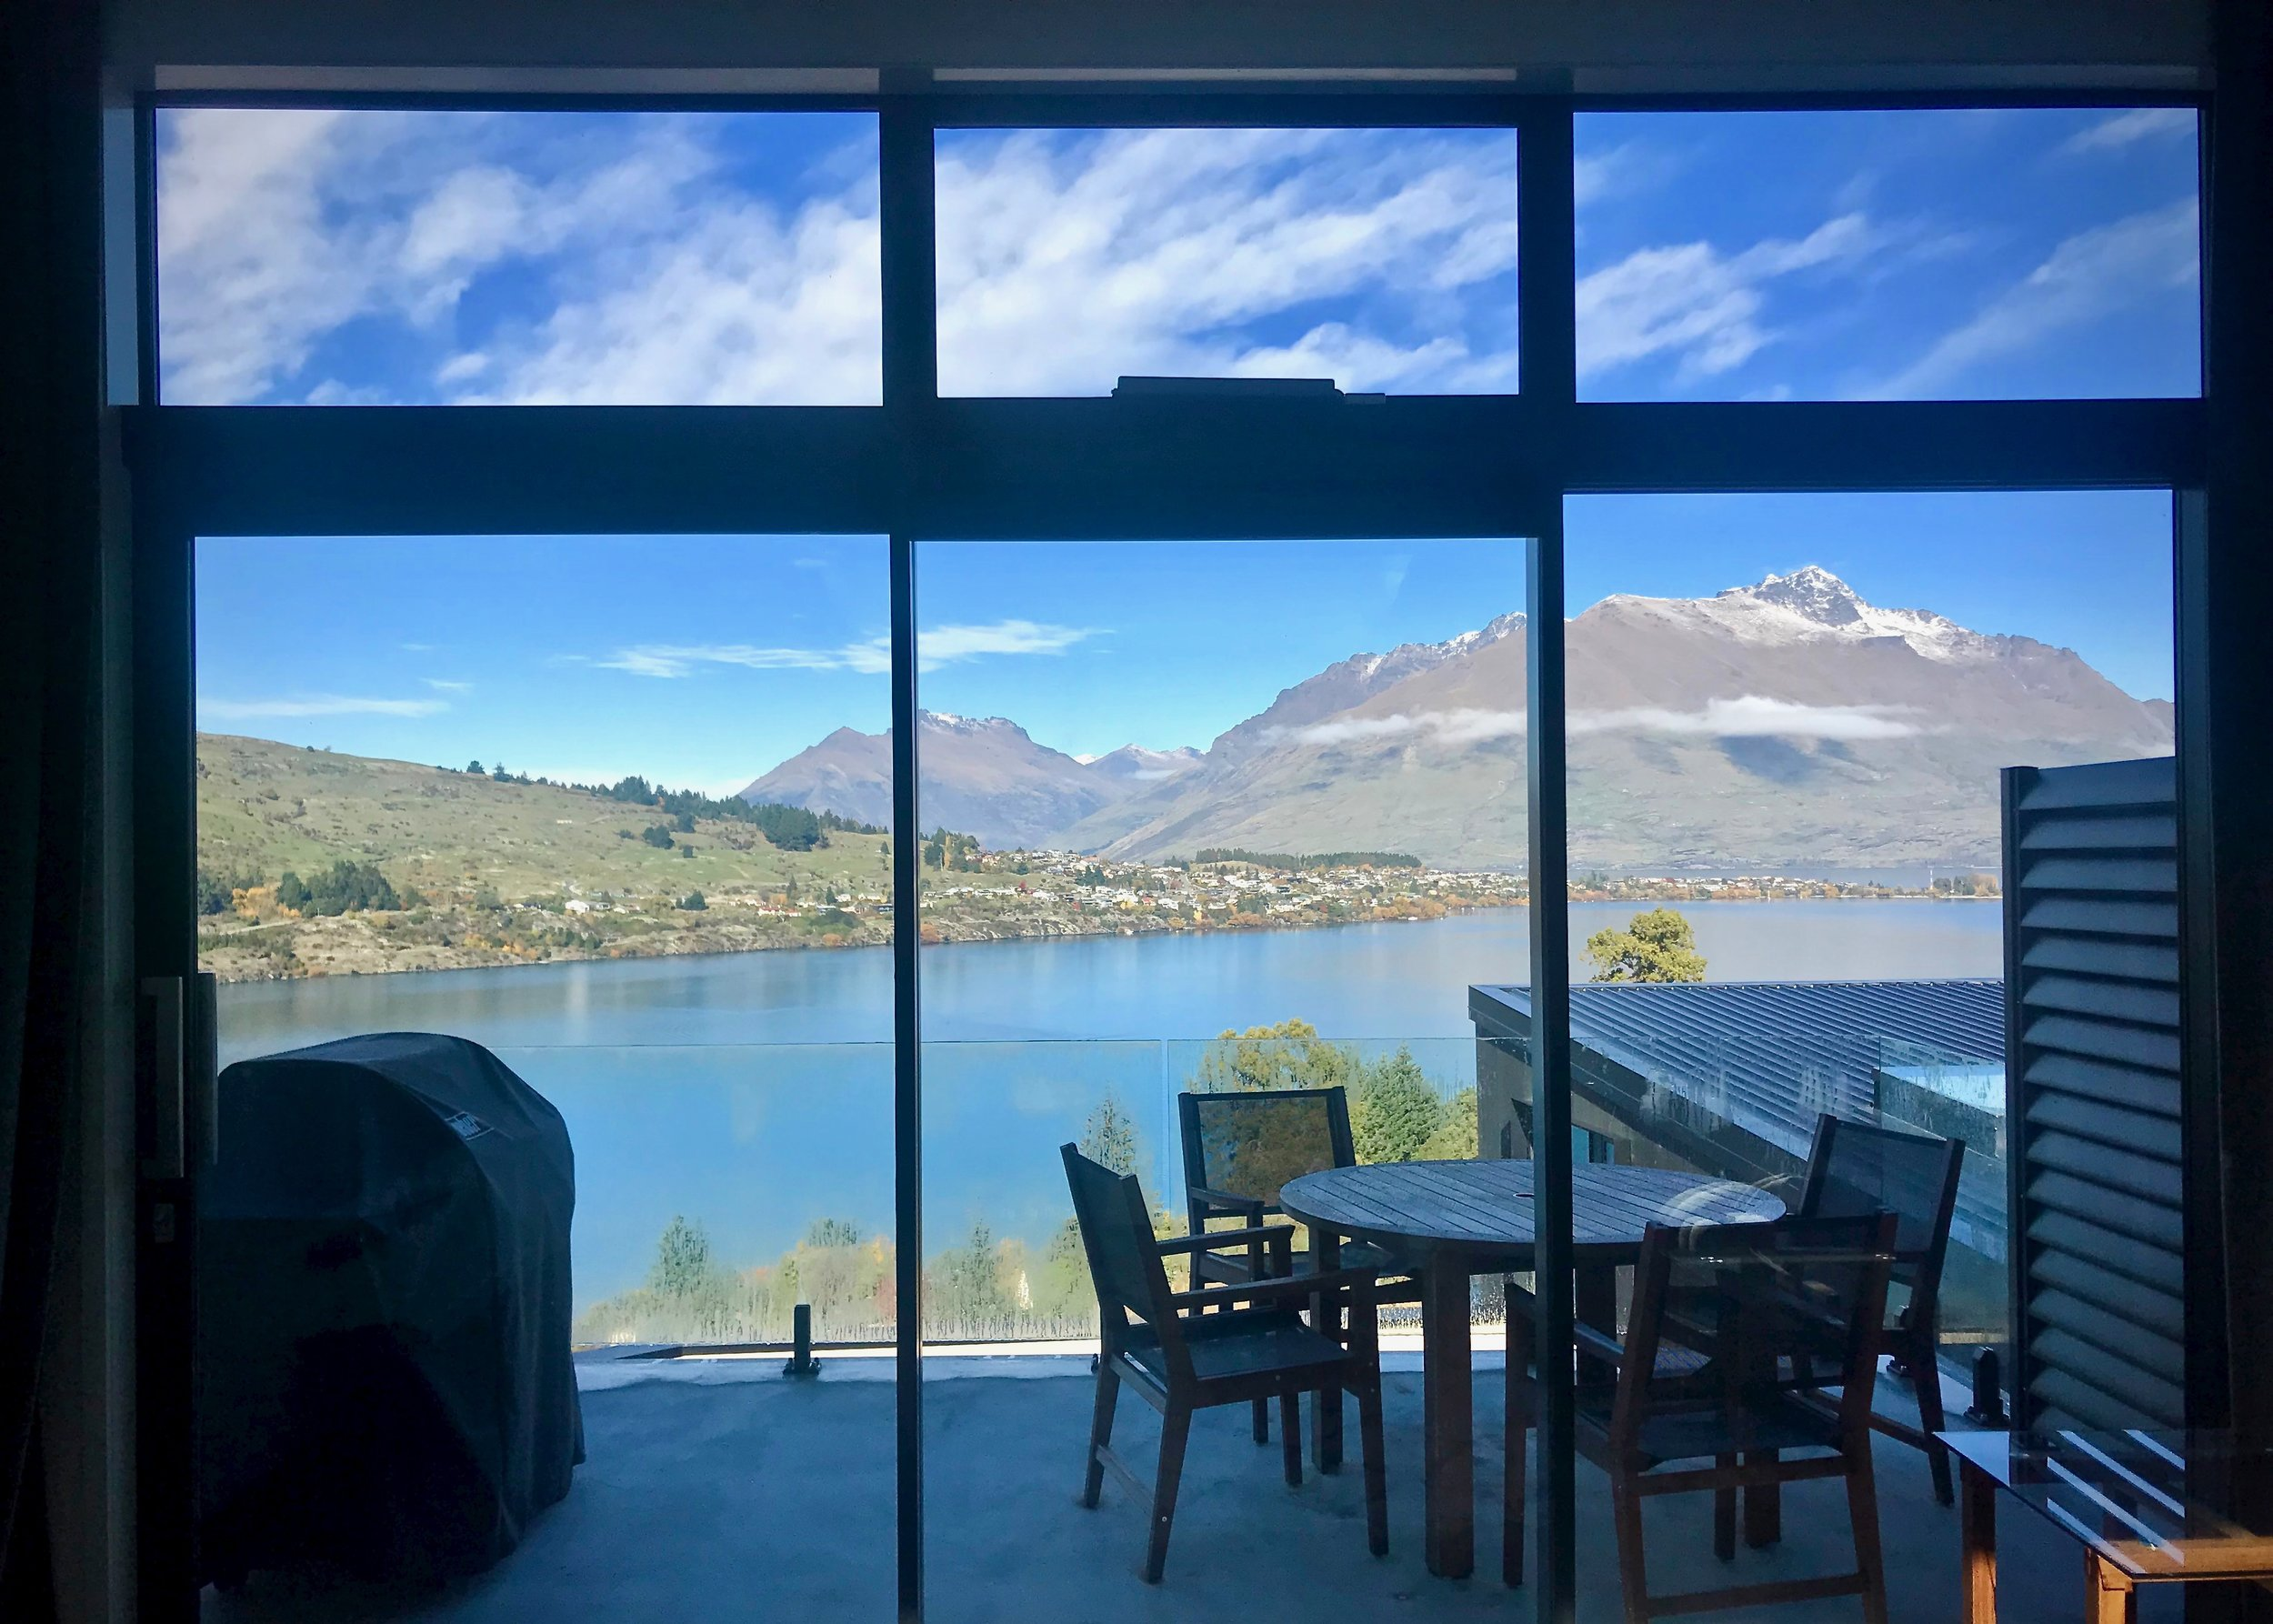 Lake Wakatipu as seen from our Airbnb living room